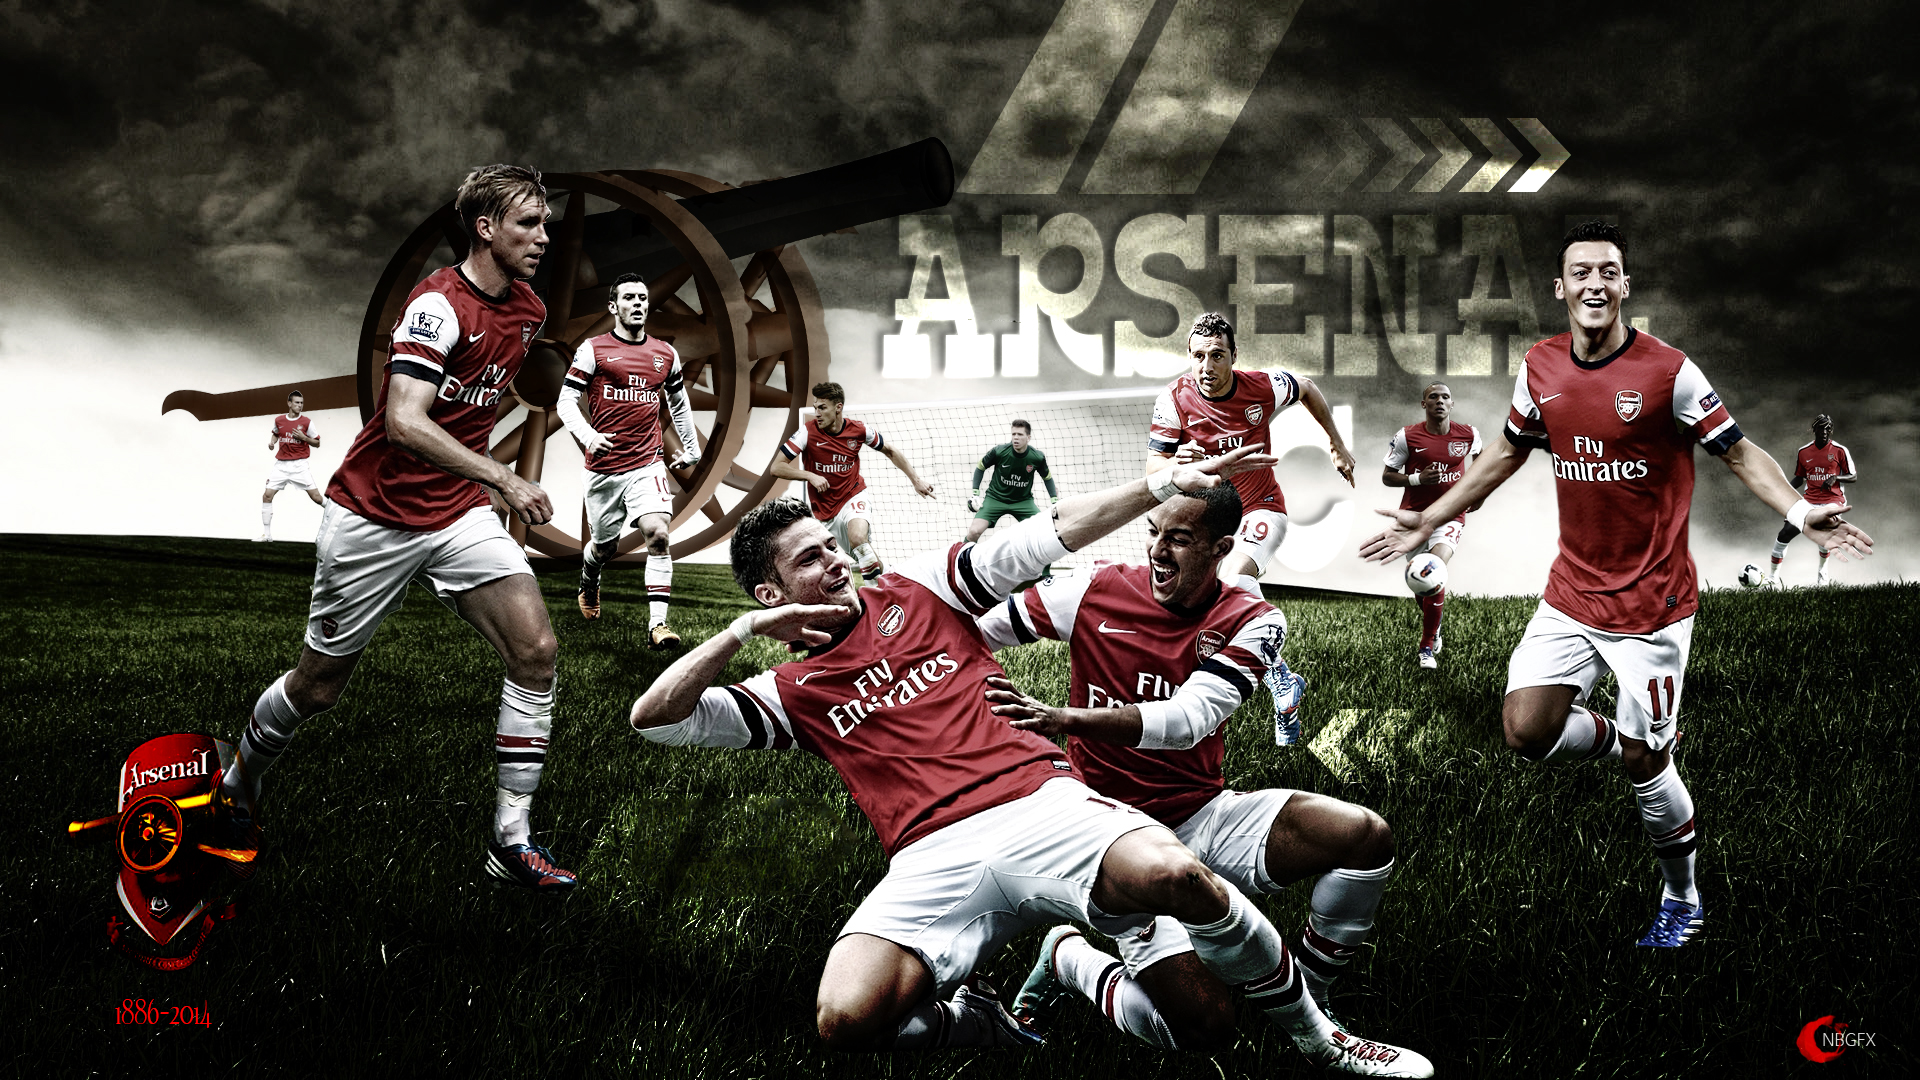 ARSENAL FC WALLPAPER  HD by nirmalyabasu5 1920x1080